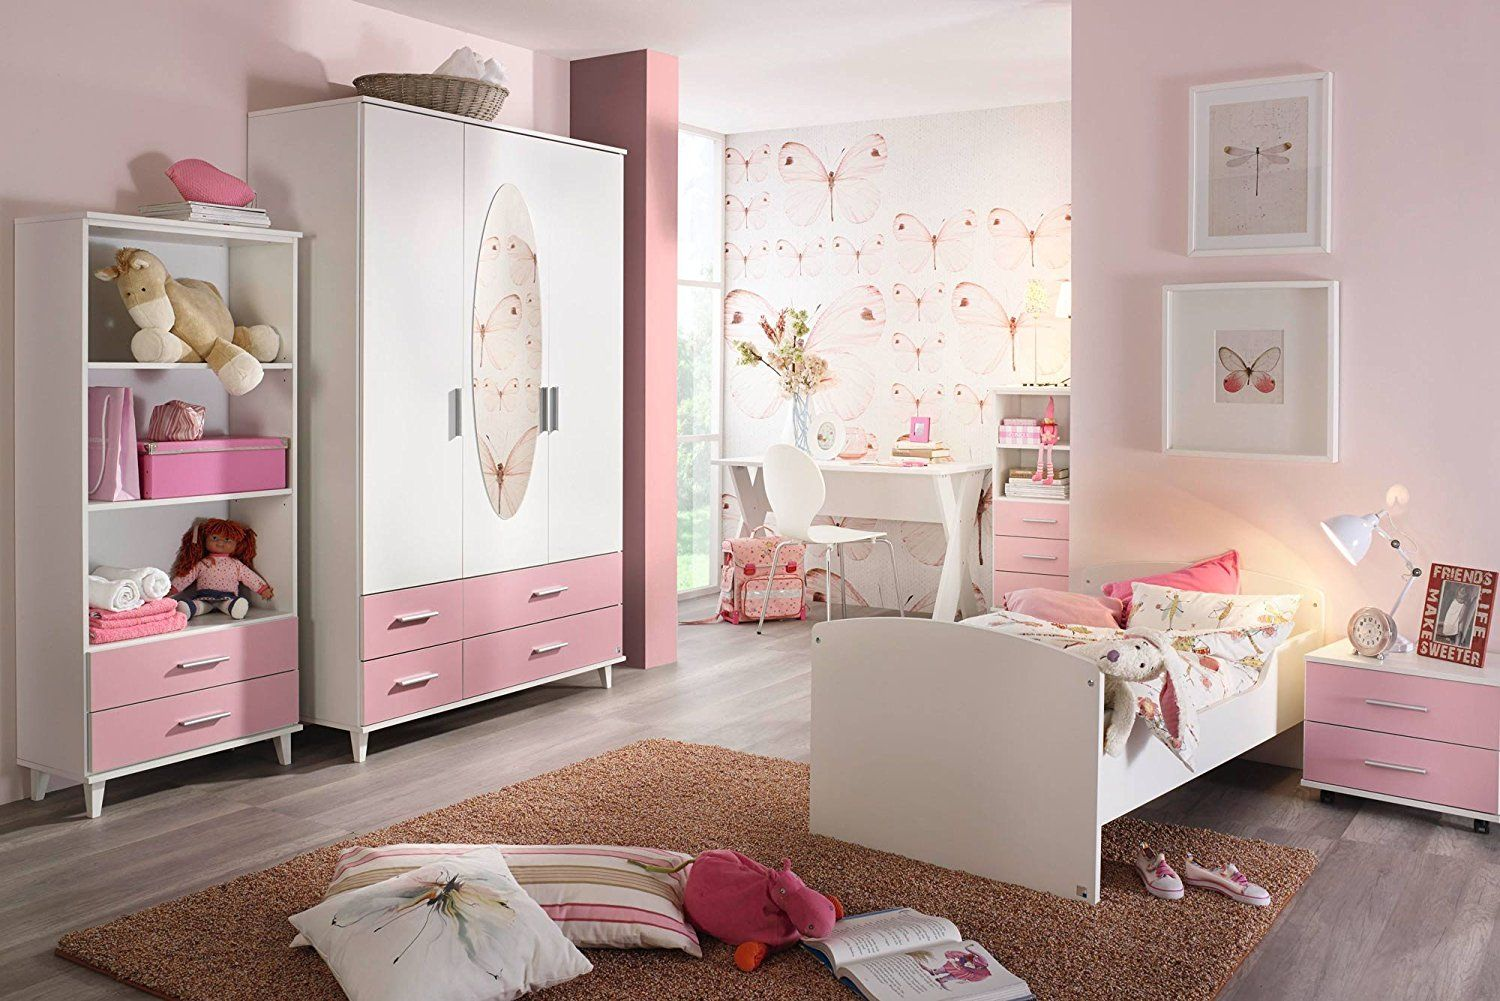 Explore Bedroom Sets For Girls And More! Jugendzimmer ...